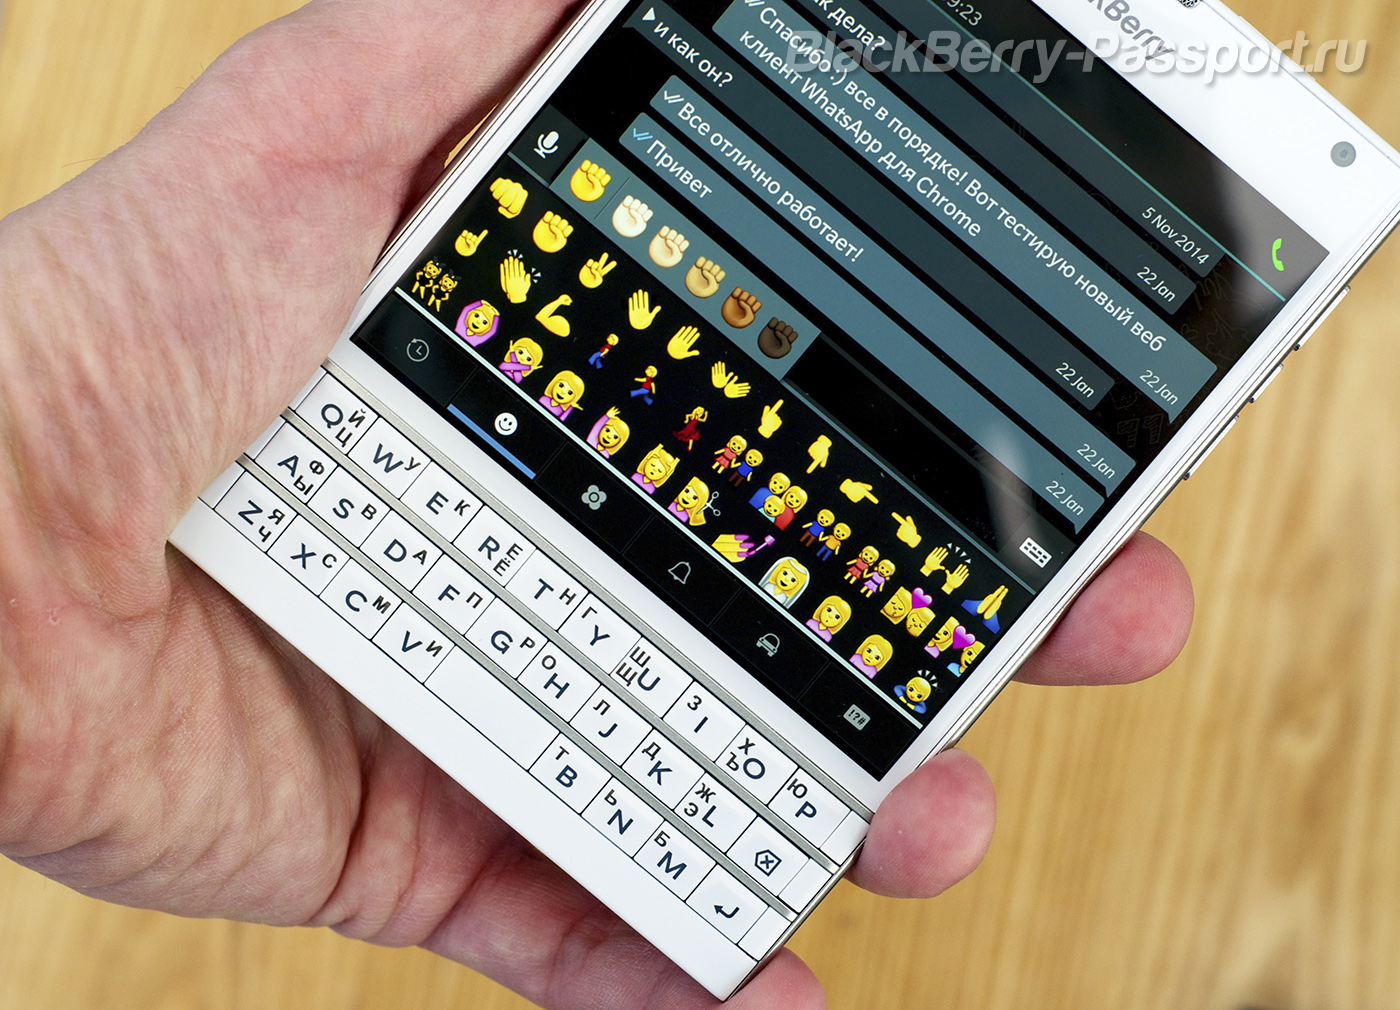 BlackBerry-Passport-BP-20-05-4